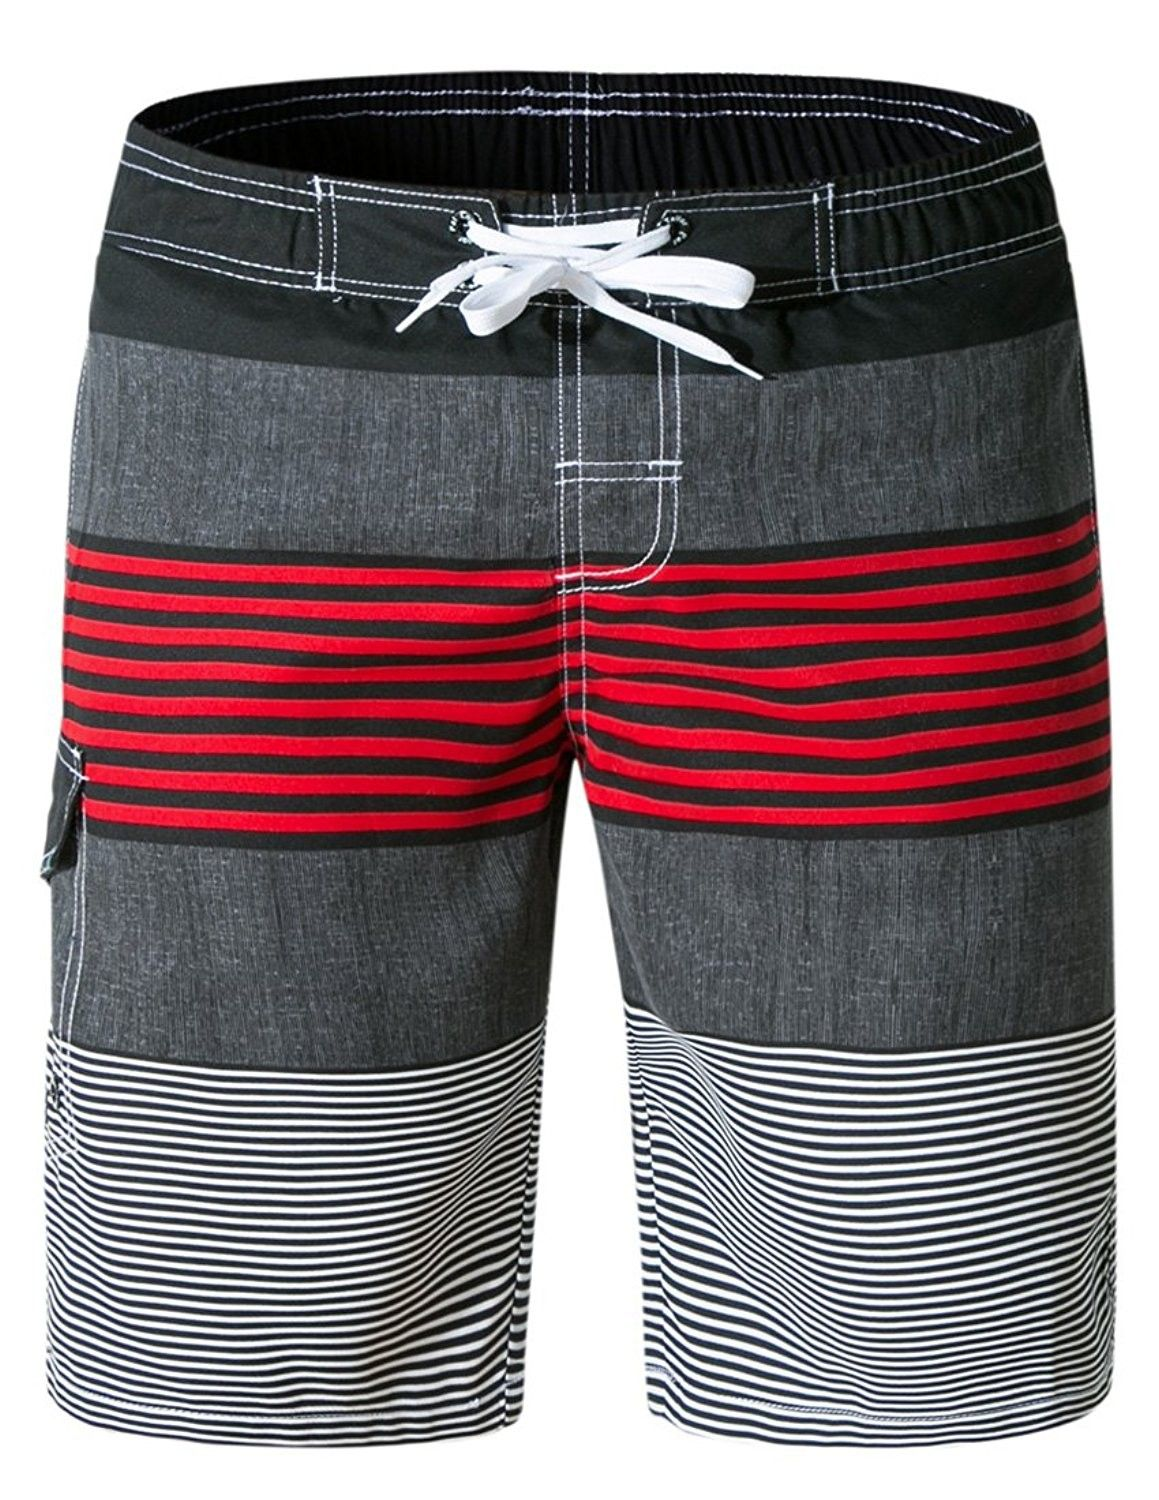 5c9cc05562 Men's Clothing, Swim, Board Shorts, Men's Board Shorts Quick Dry Striped Swim  Trunks with Mesh Lining - Bred - CL18C8LZSE7 #fashion #Swim #men #outfits  ...